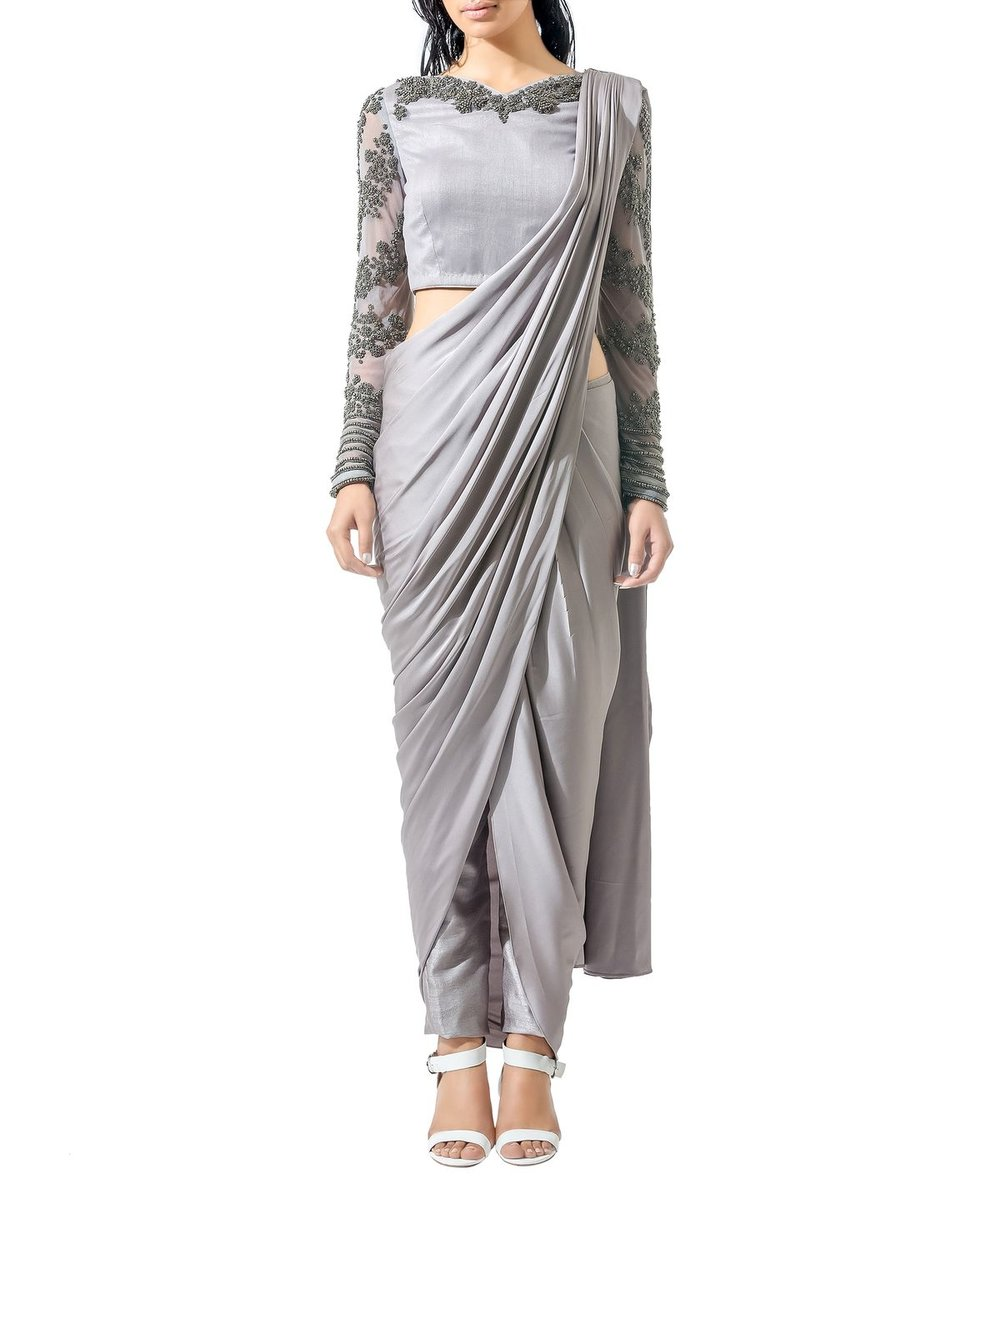 Bhaavya Bhatnagar Grey Beaded Three Piece Sari Set